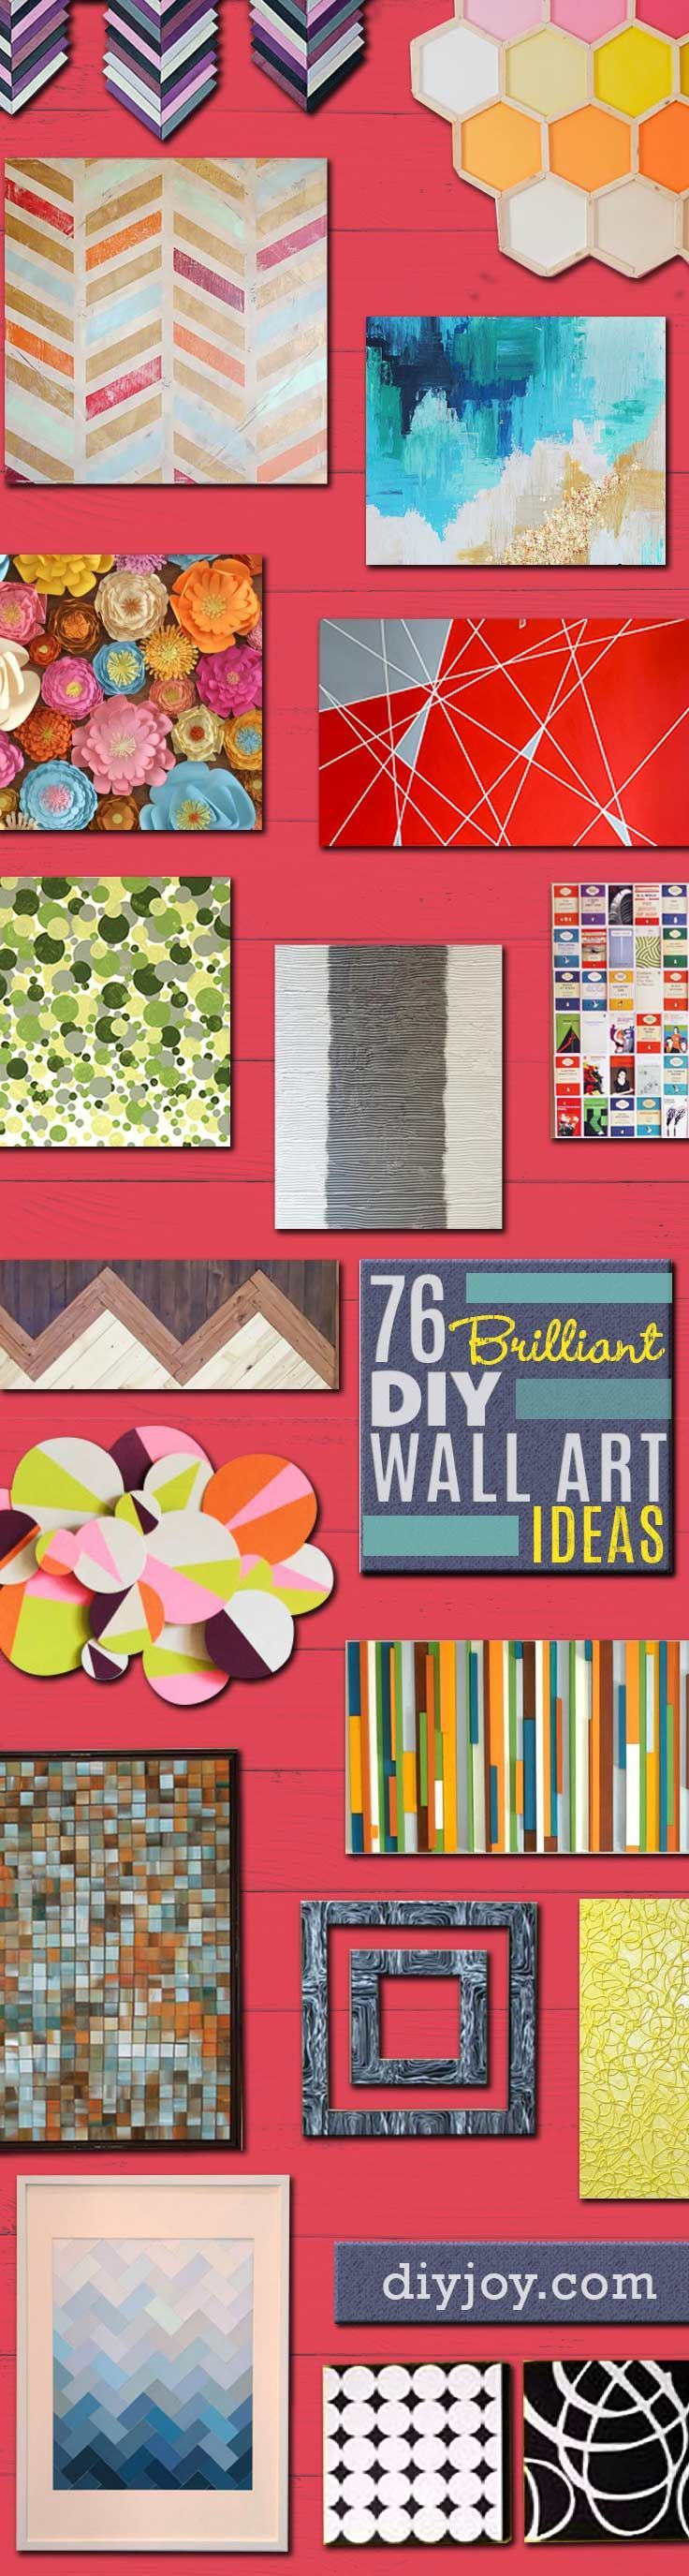 76 Brilliant DIY Wall Art Ideas for Your Blank Walls - Page 15 of 15